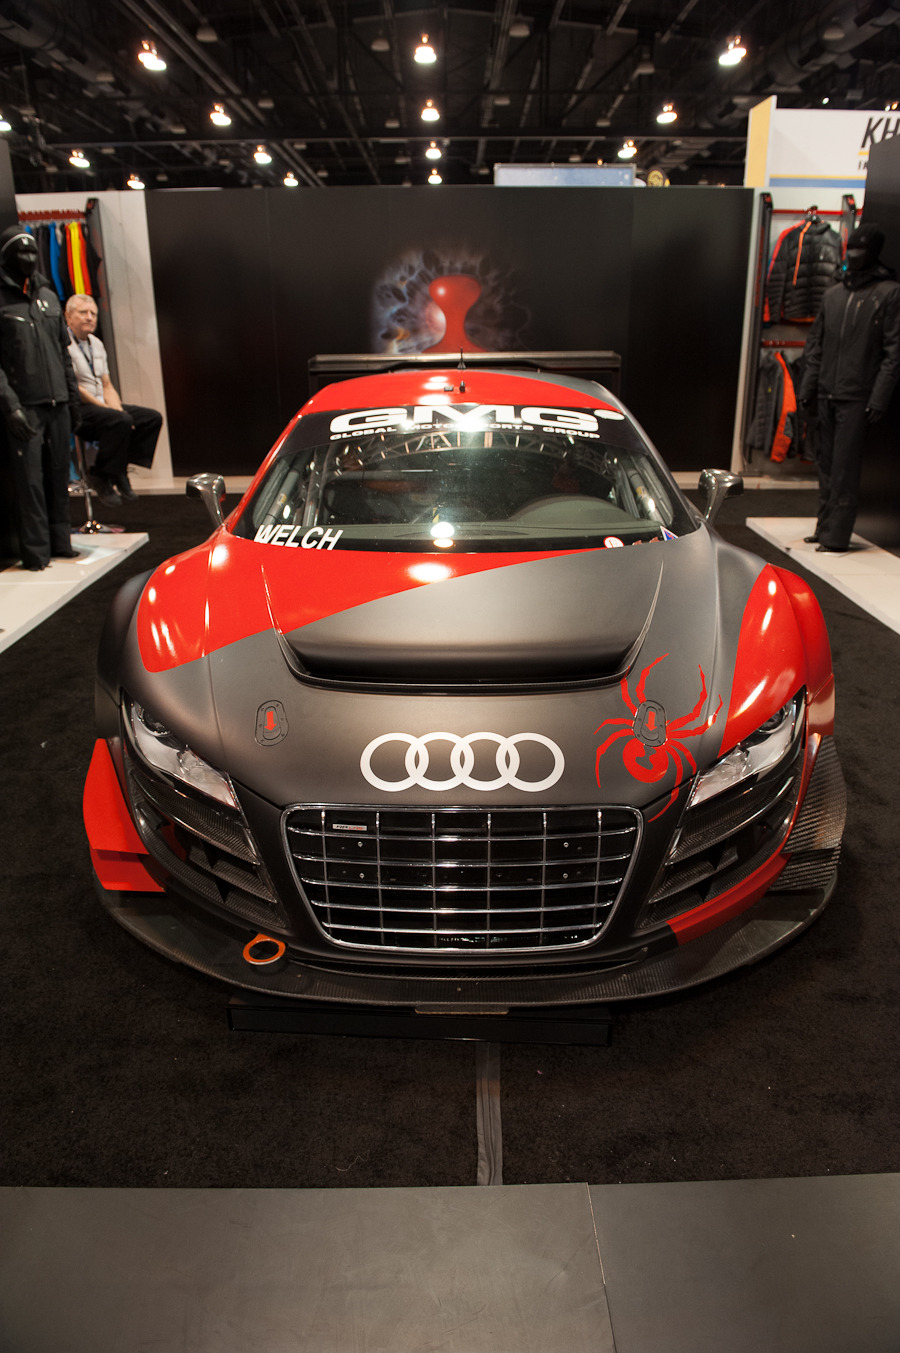 The awesome Spyder Audi.